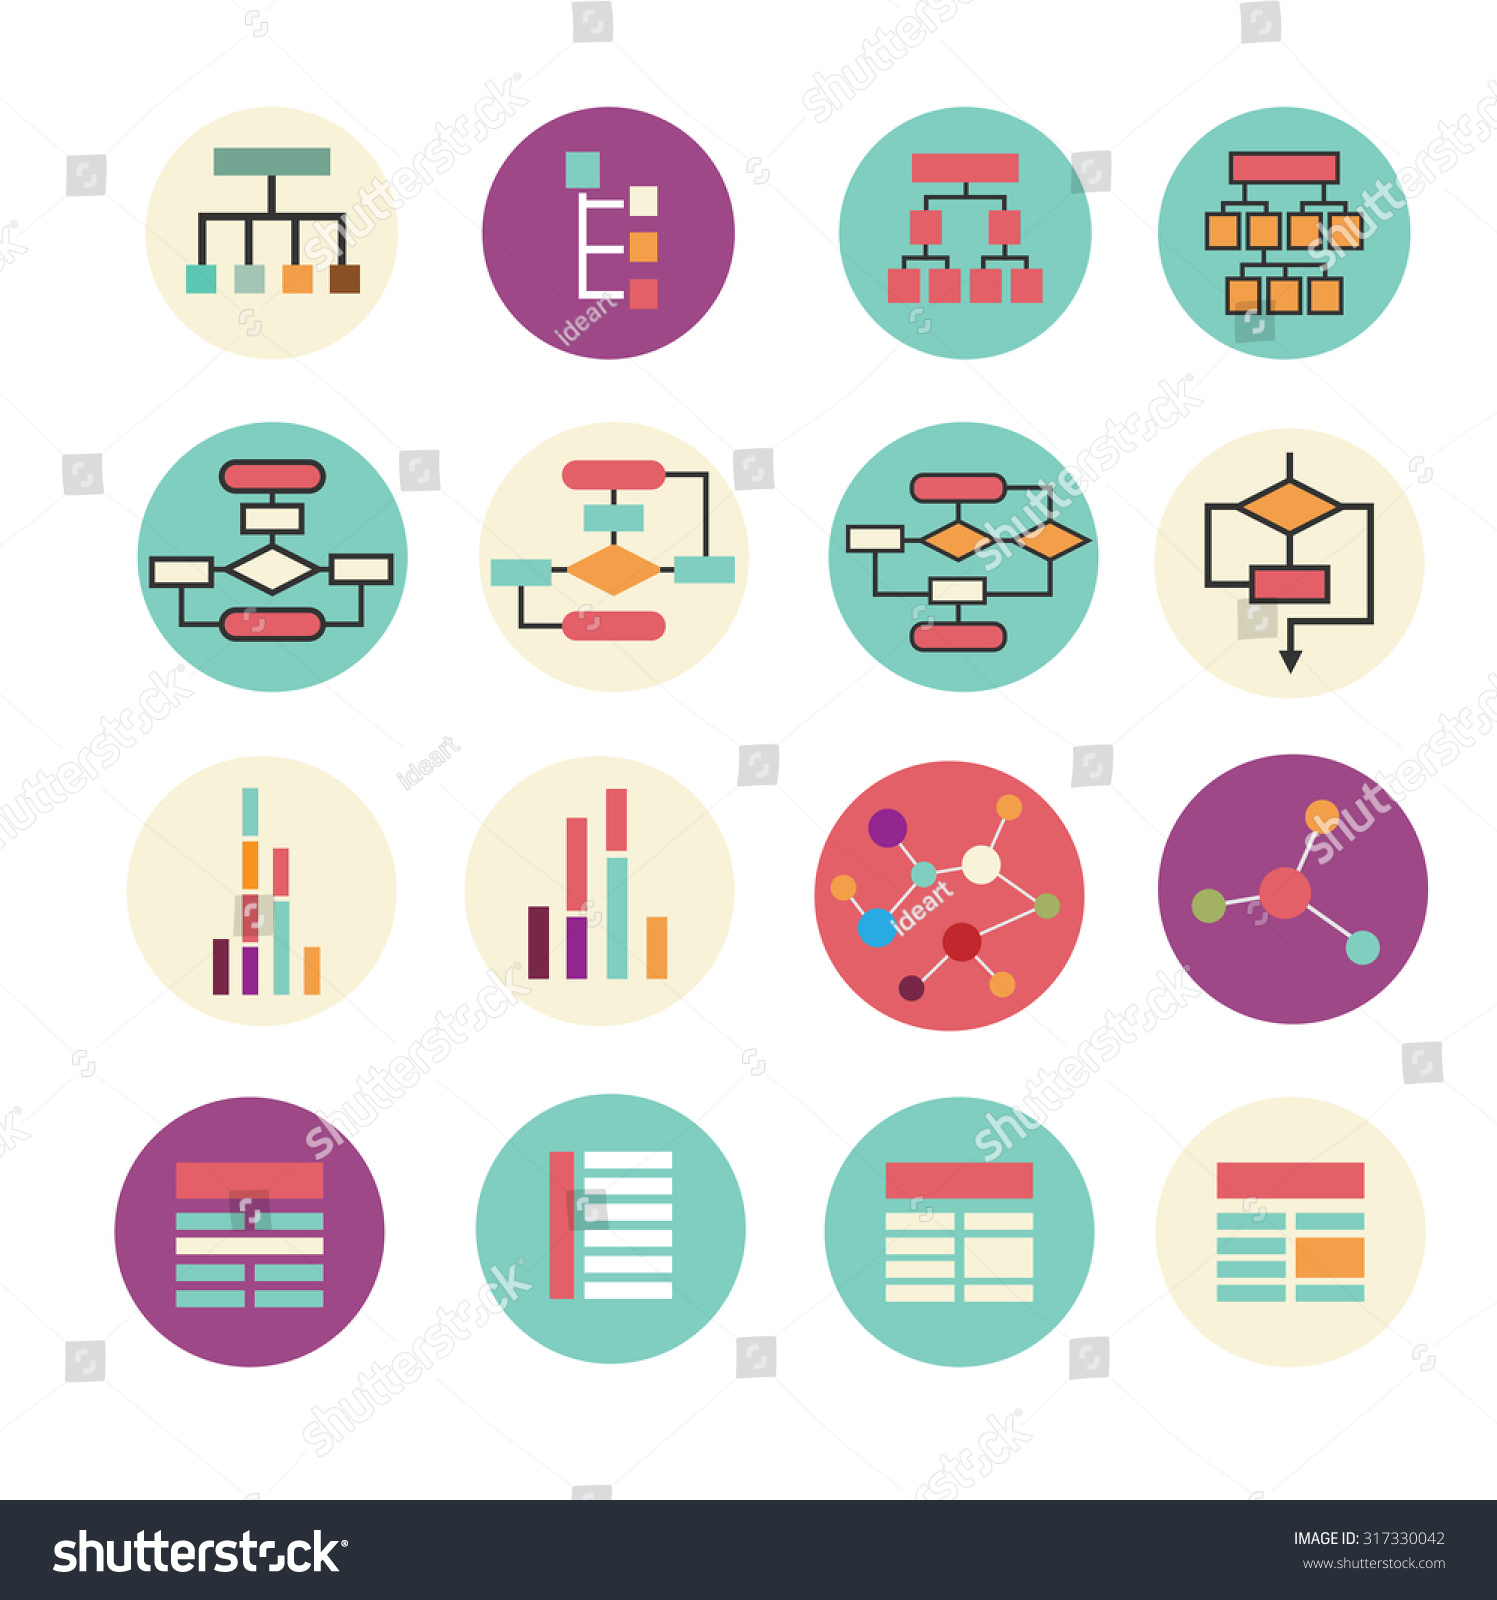 Set Of Diagram  Block Scheme  Chart Icons  Vector Simple Colorful Icon In Modern Flat Style